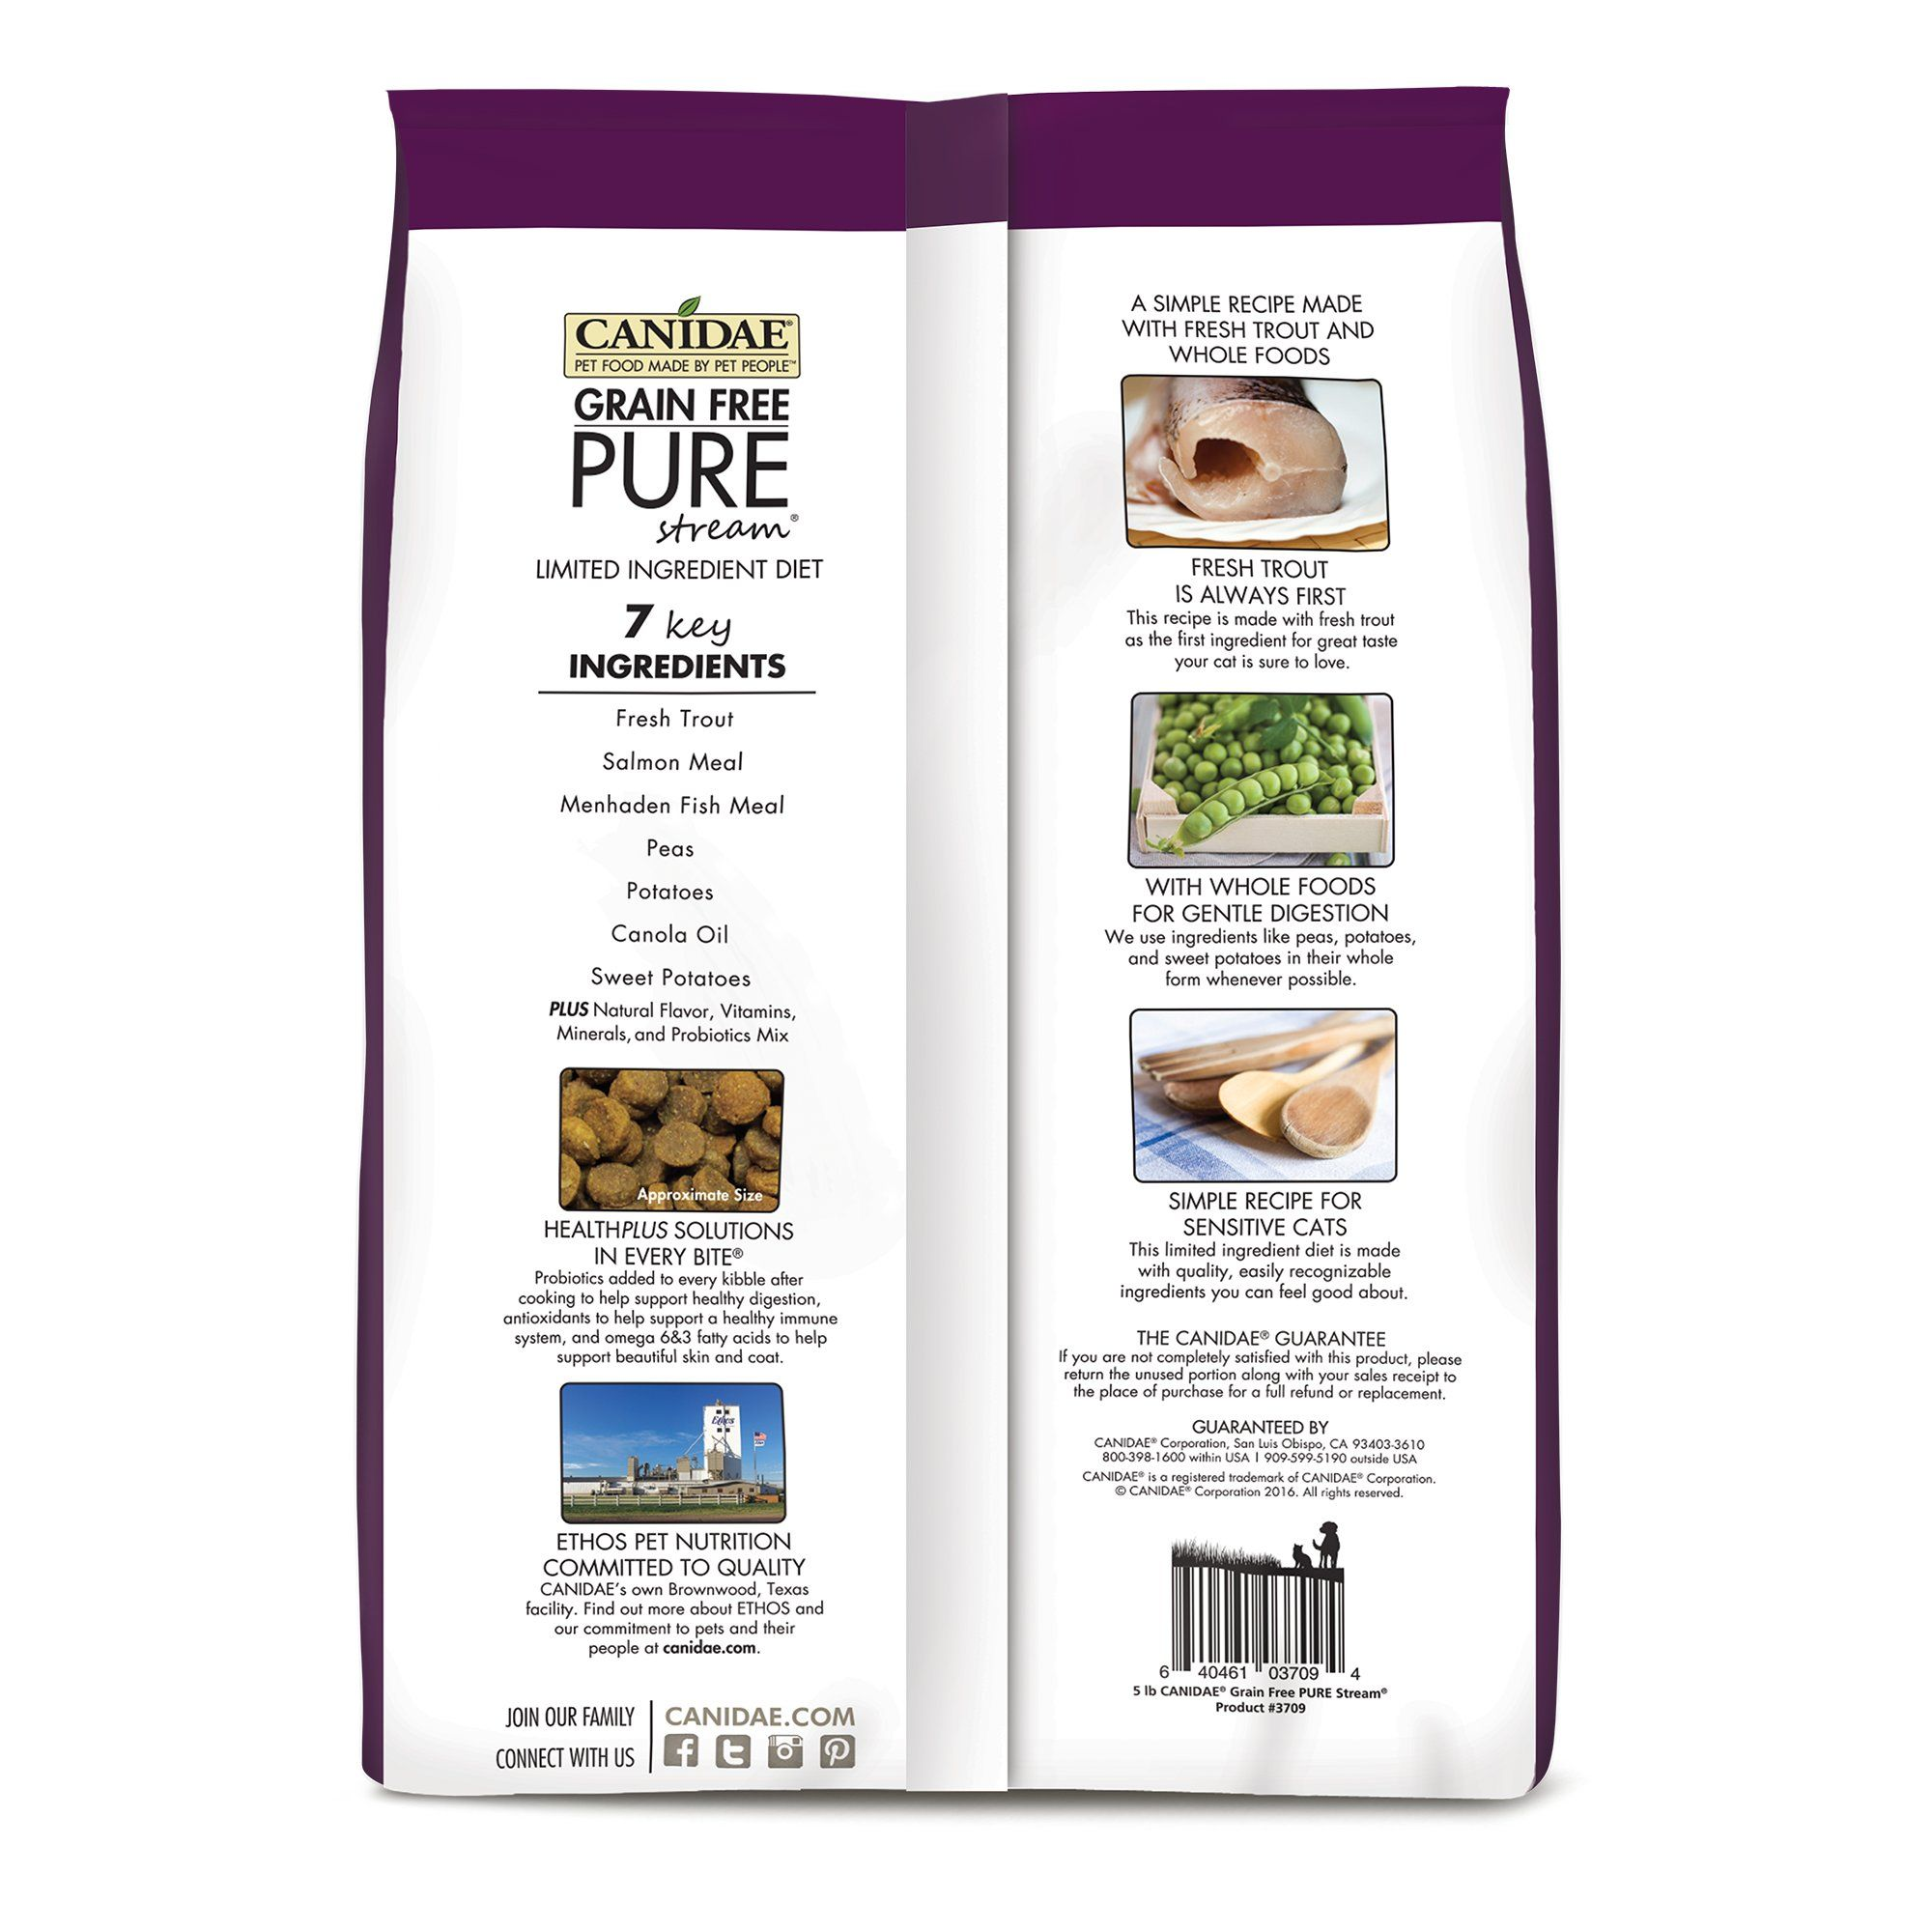 Canidae Grain Free Pure Stream Cat Dry Formula With Trout 2 5 Lbs Dry Cat Food Grain Free Trout Recipes